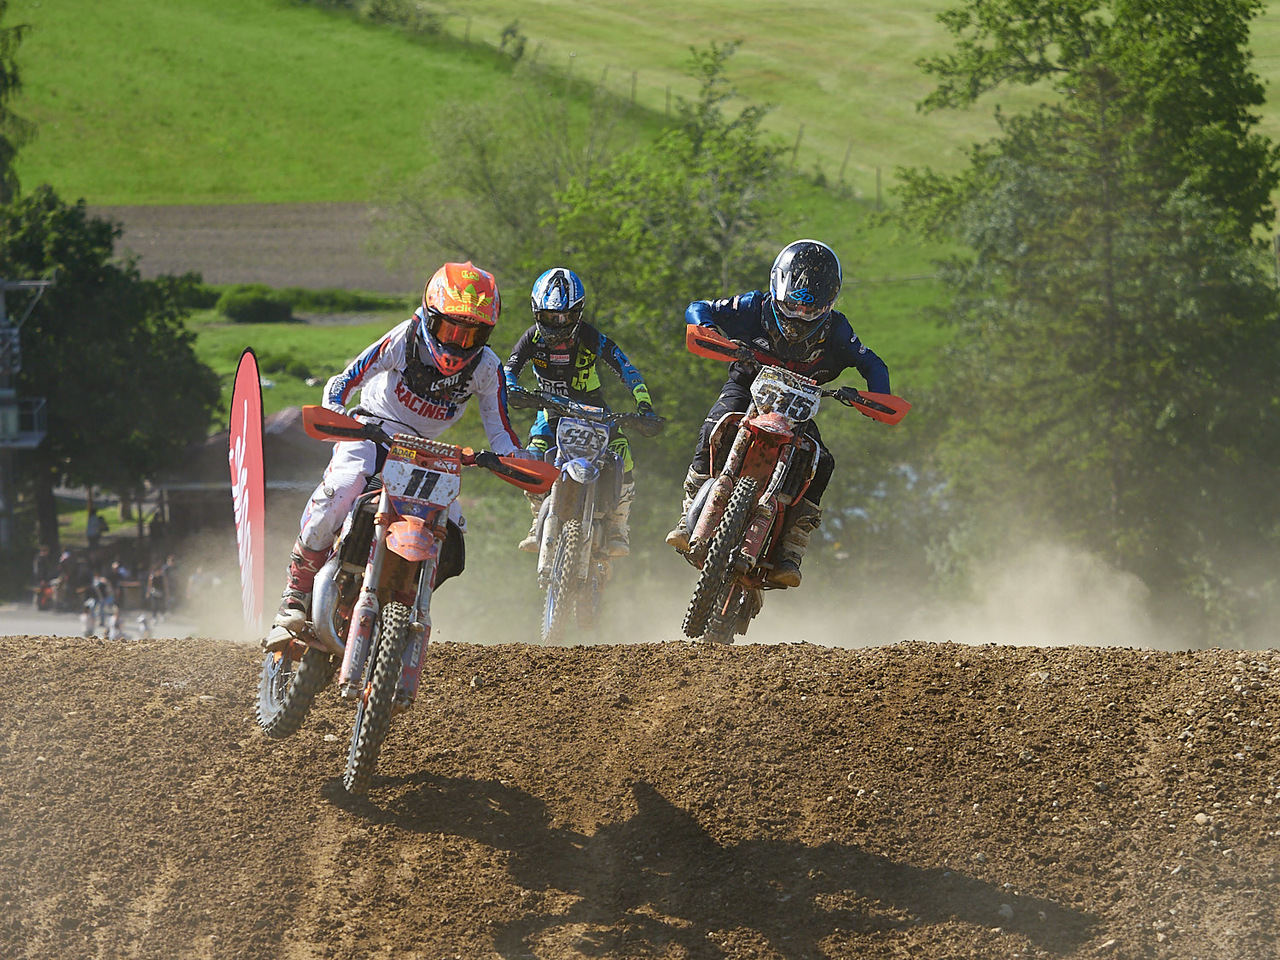 MotoCross in Möggers